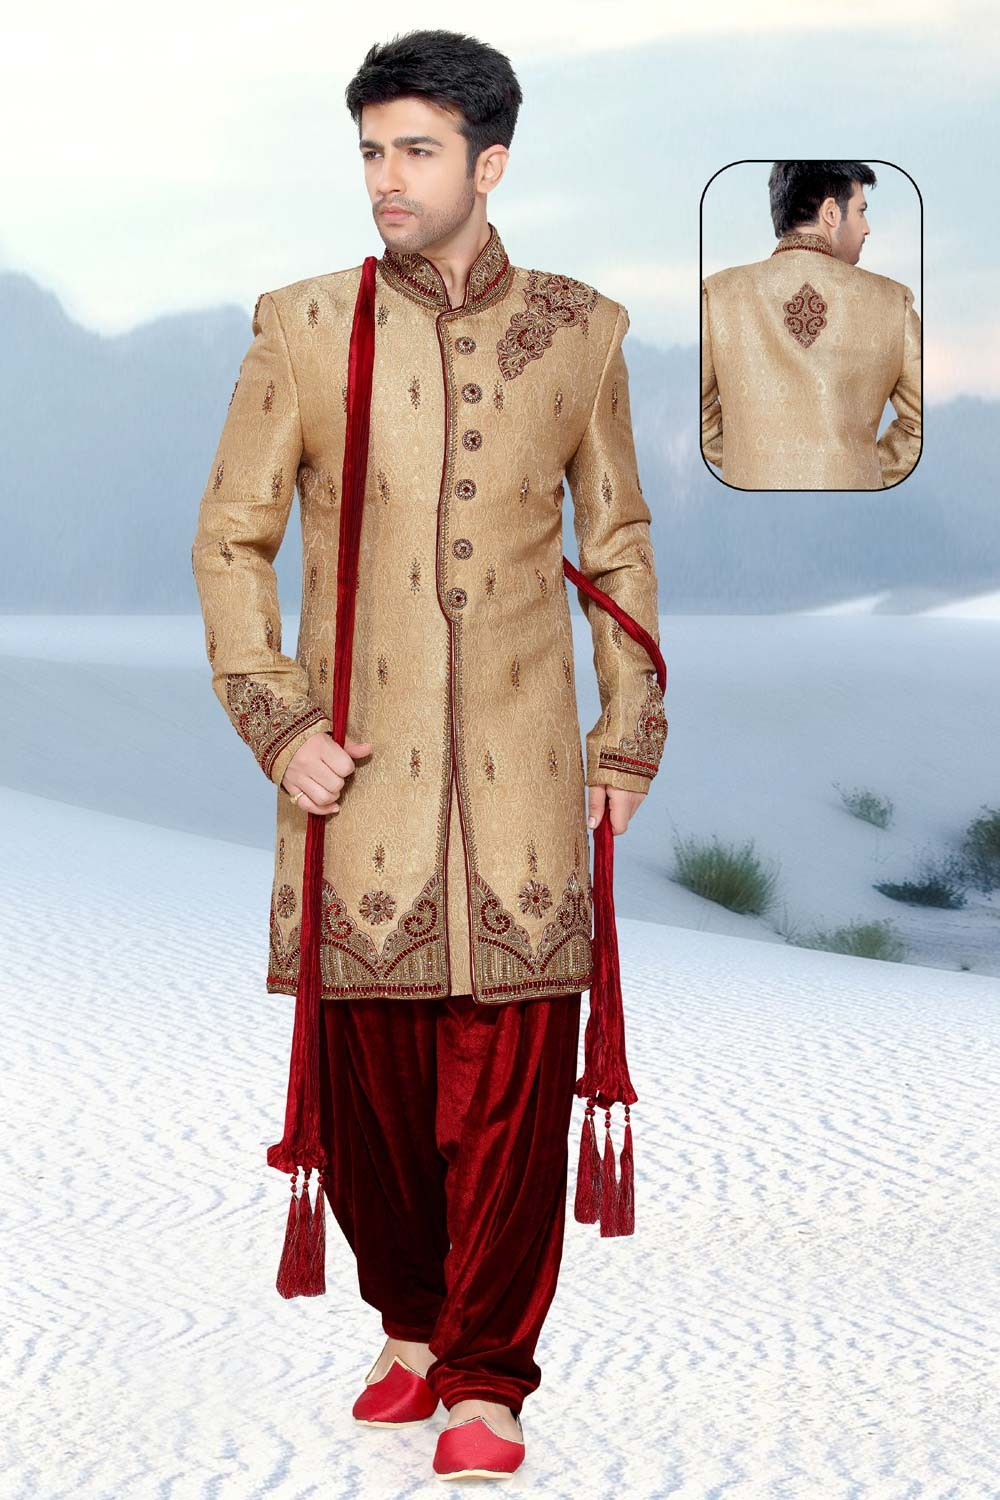 Golden & Beige Men's Indo Western